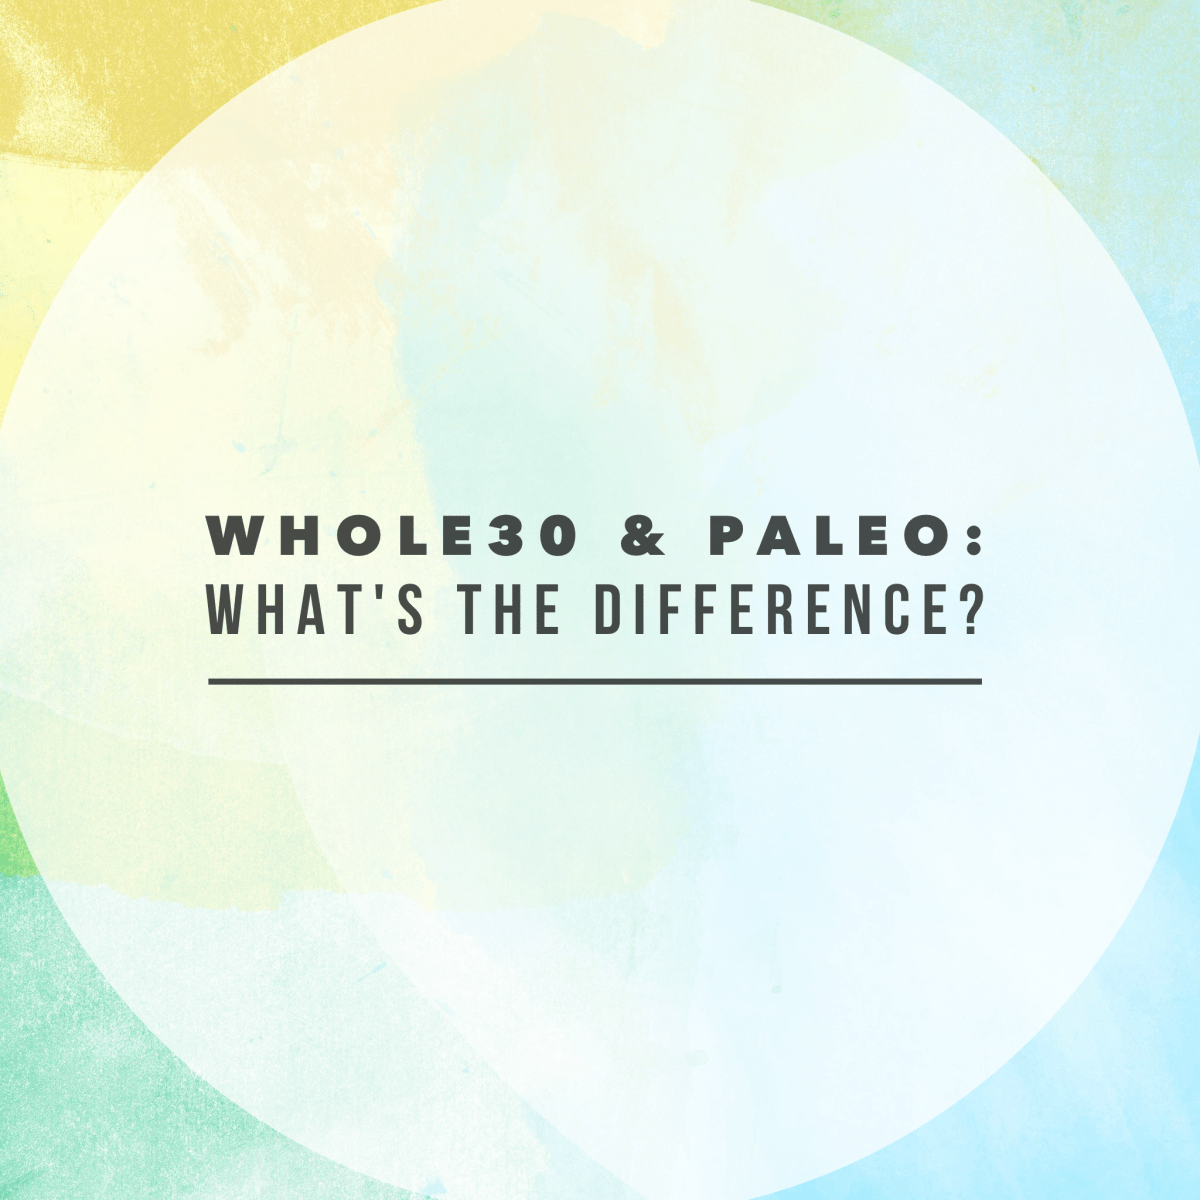 What's the Difference Between Paleo and Whole30?